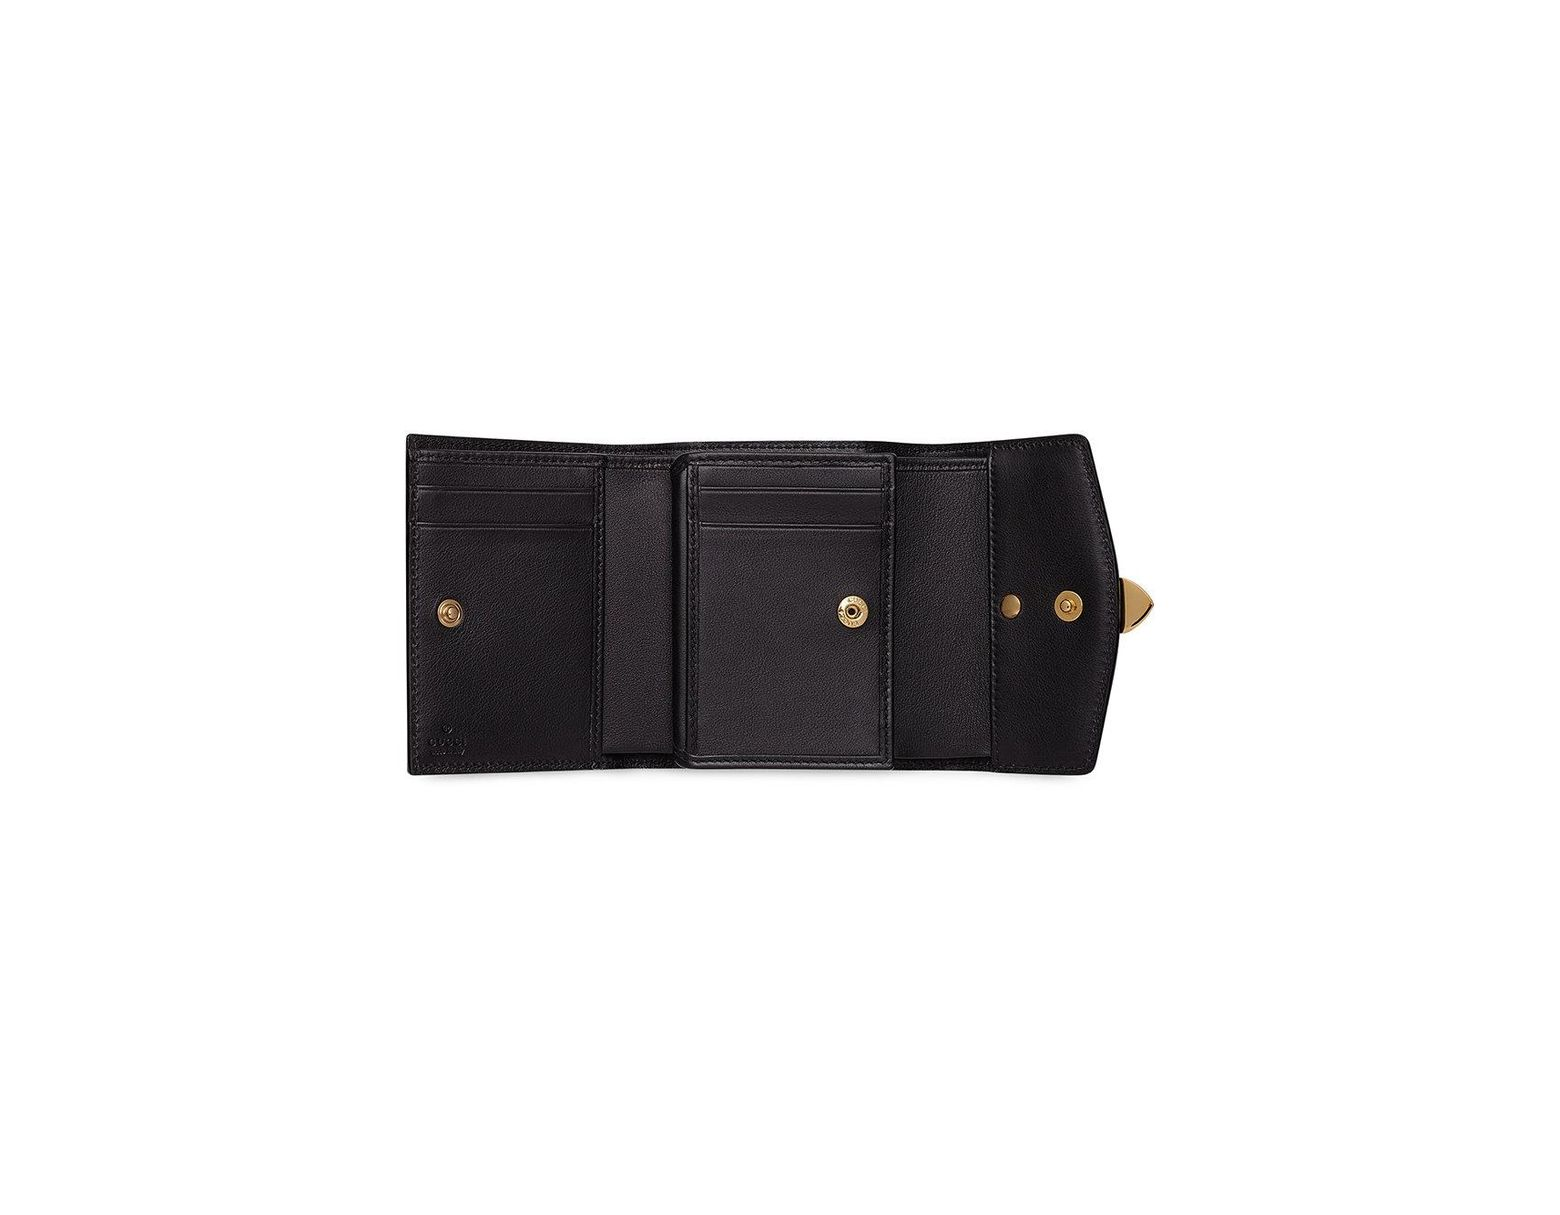 8db16447bc91 Gucci Sylvie Leather Wallet in Black - Save 6% - Lyst